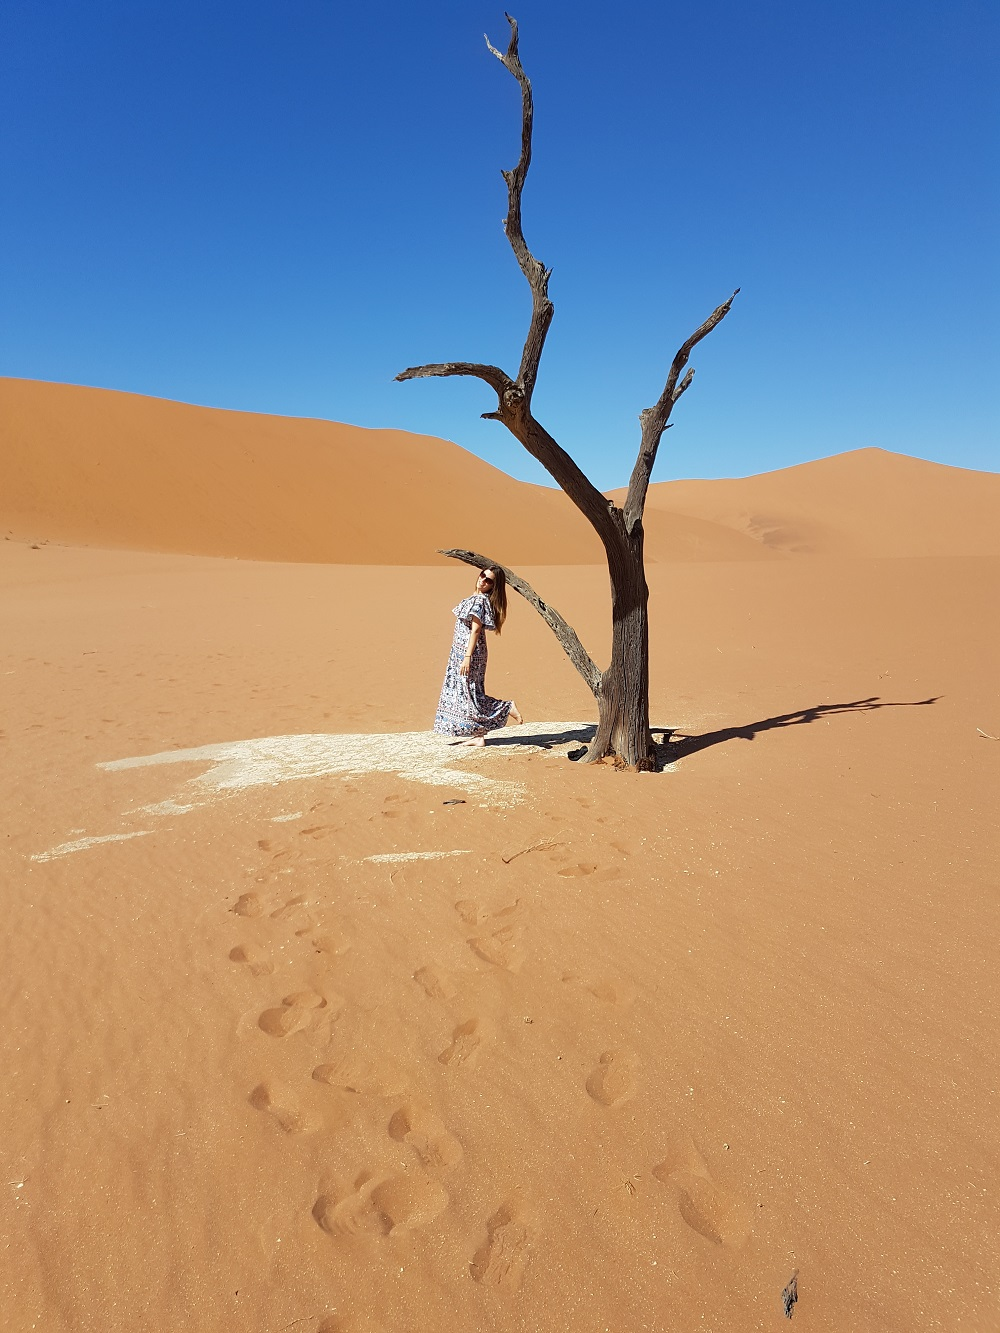 5 REASONS WHY YOU HAVE TO VISIT THE NAMIB DESERT